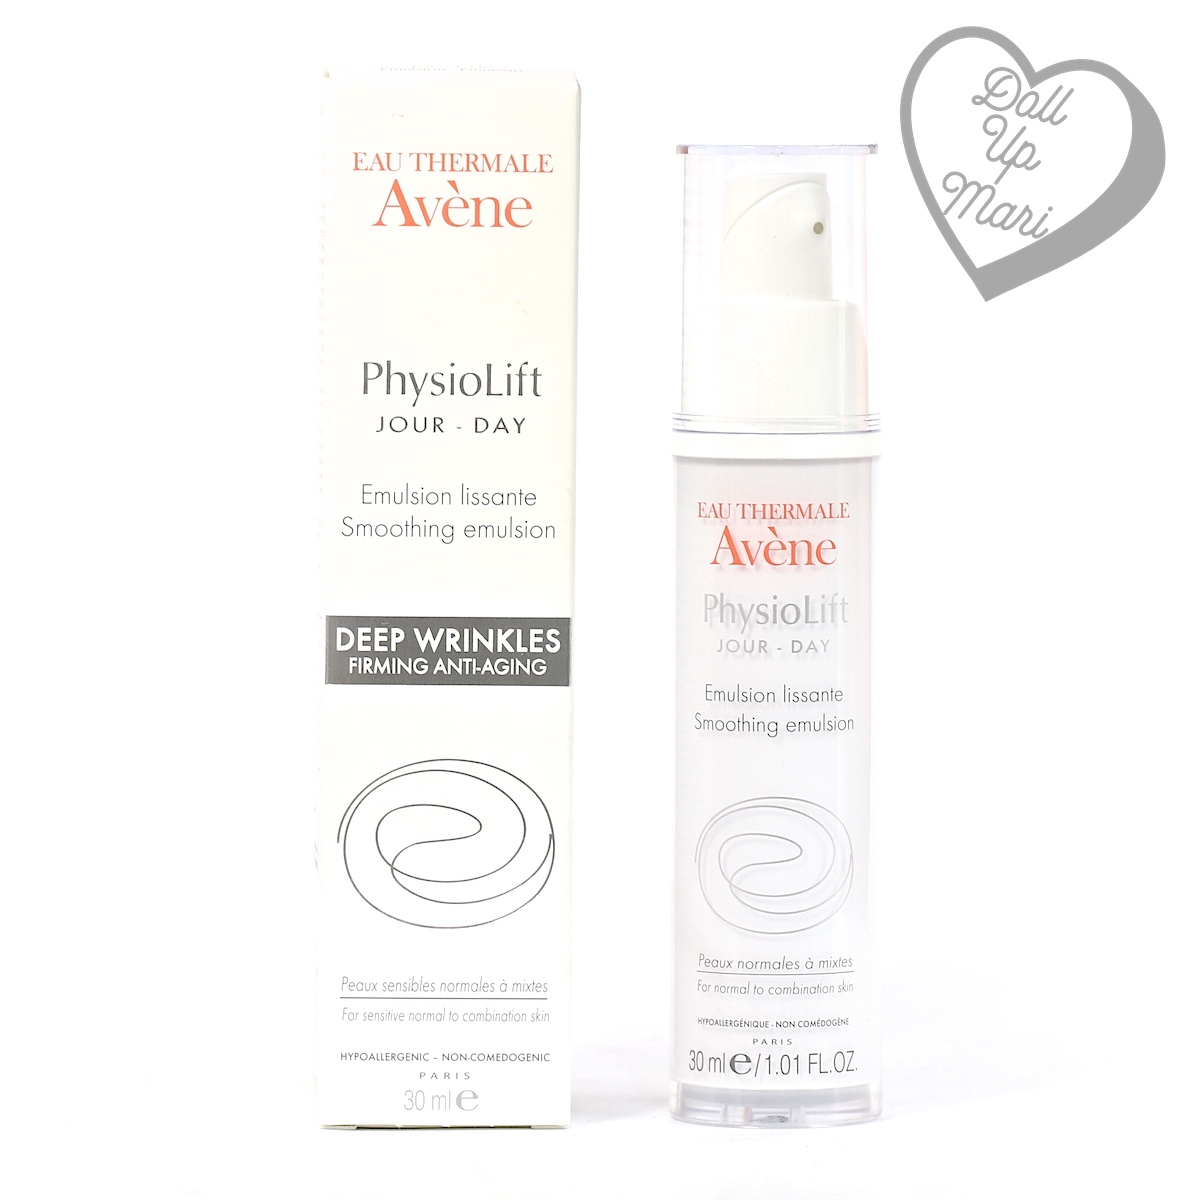 pack shot of Avène PhysioLift Day Smoothing Emulsion